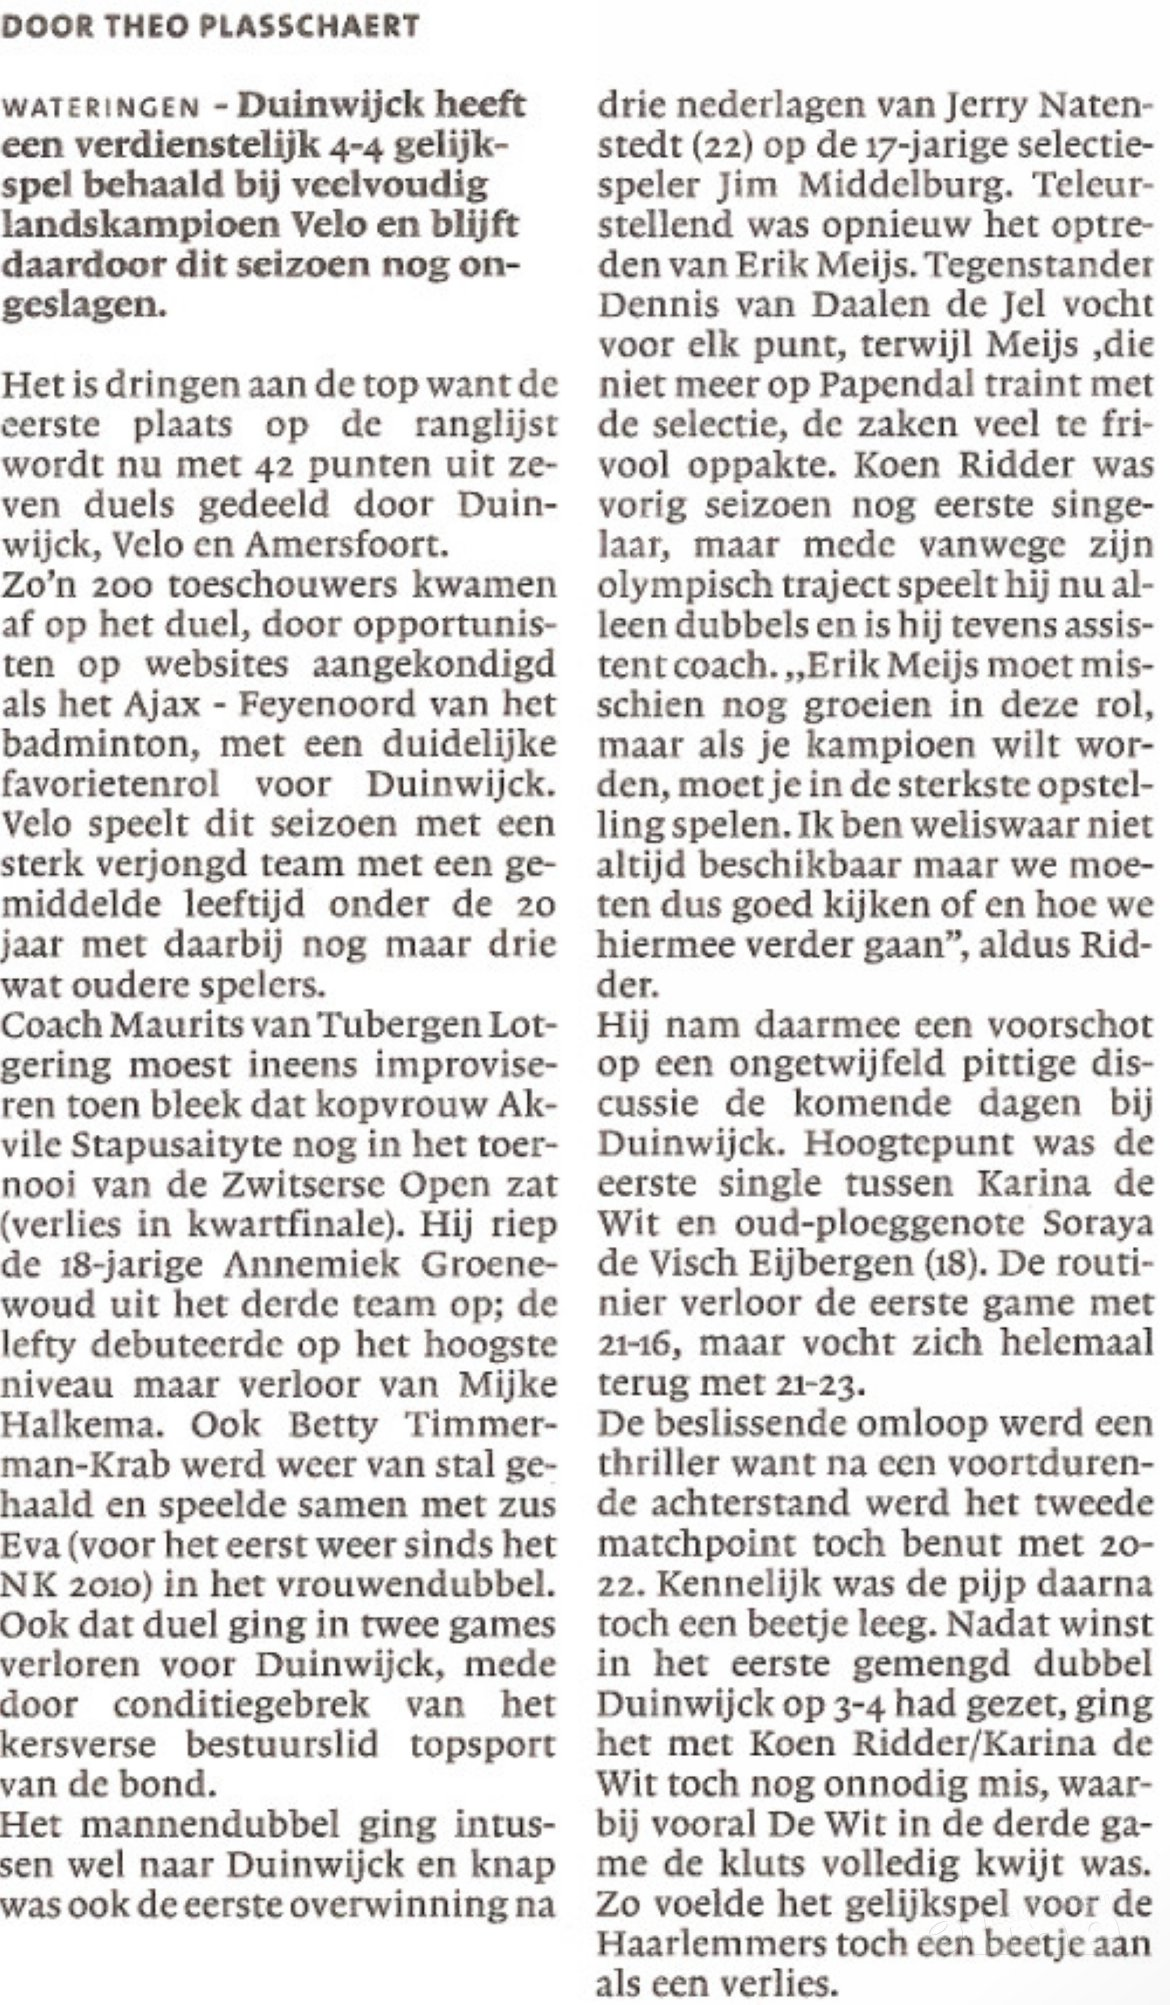 (c) Haarlems Dagblad